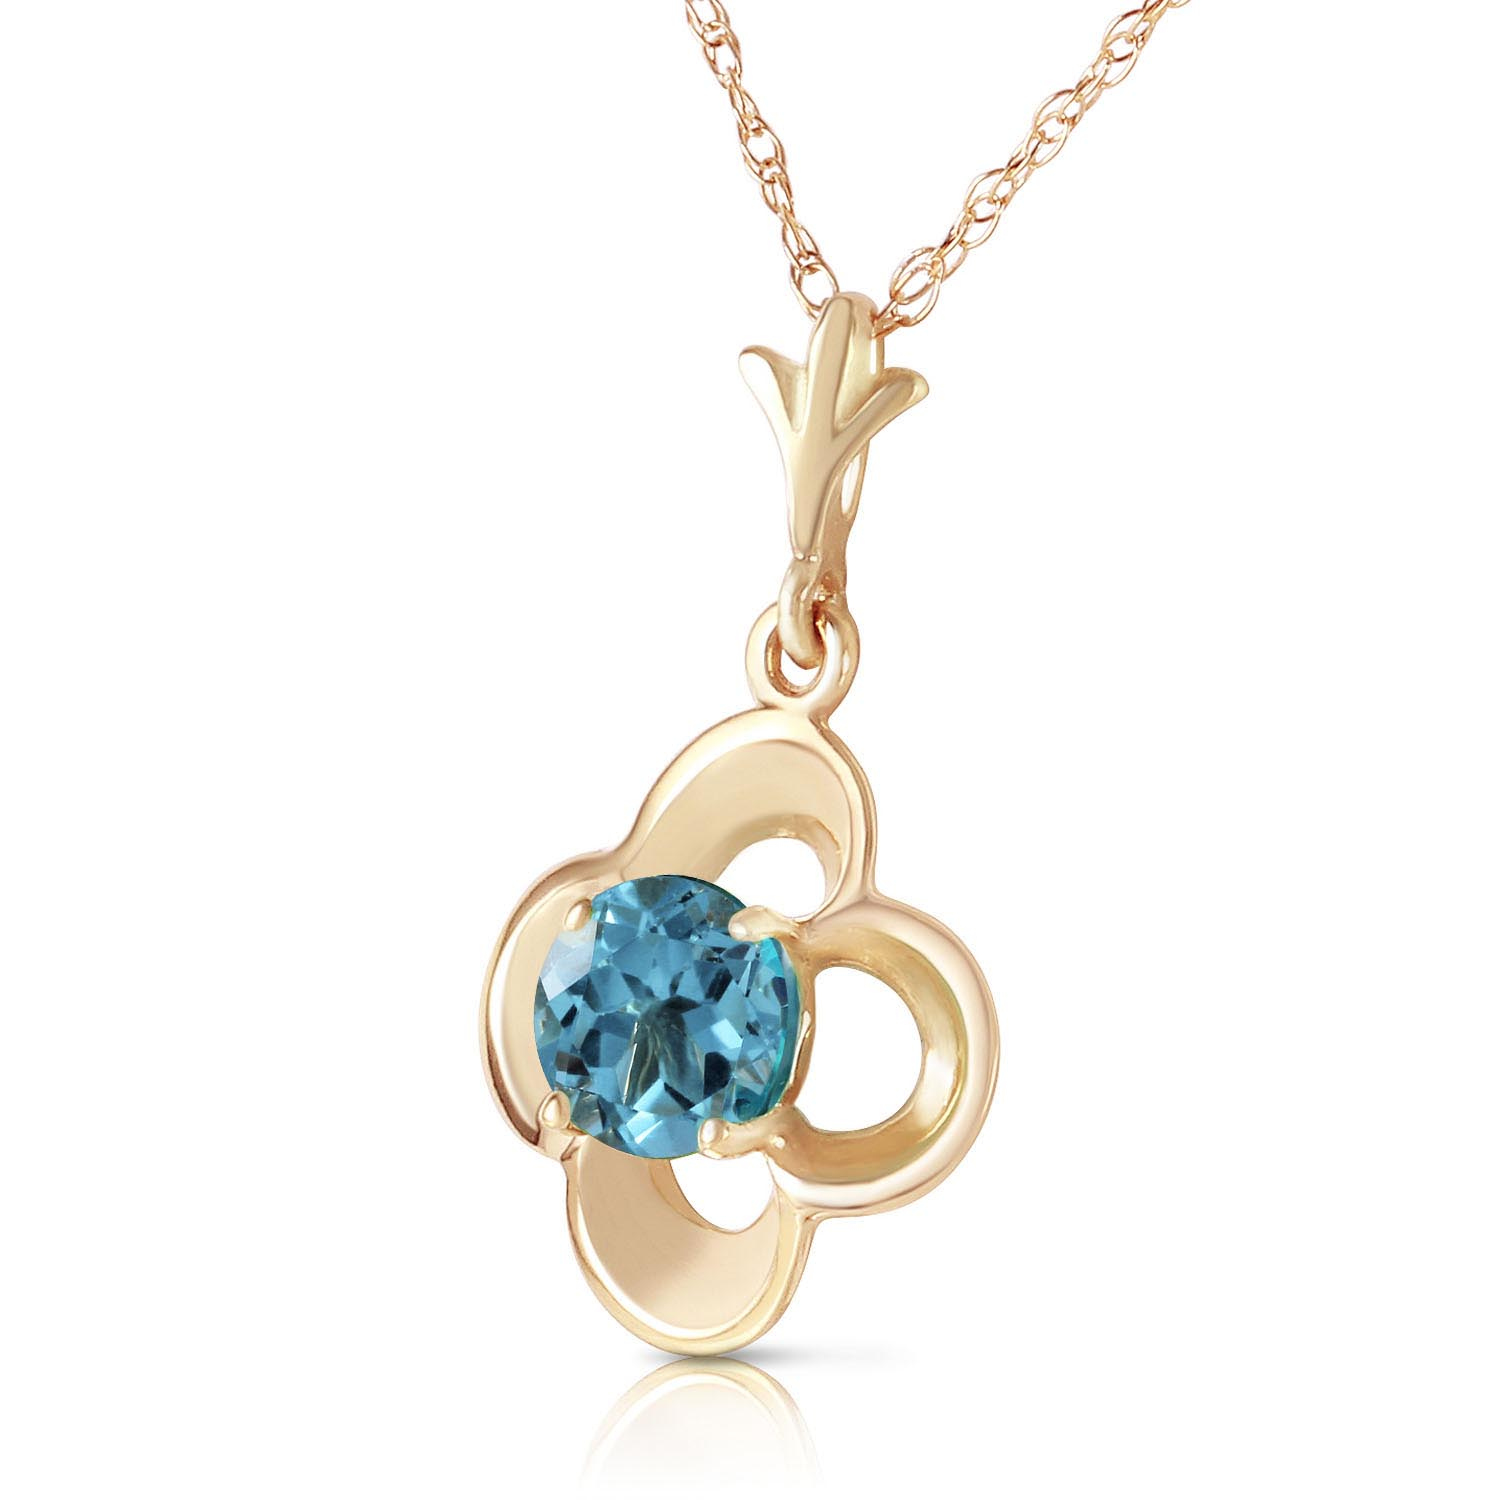 Blue Topaz Corona Pendant Necklace 0.55ct in 9ct Gold